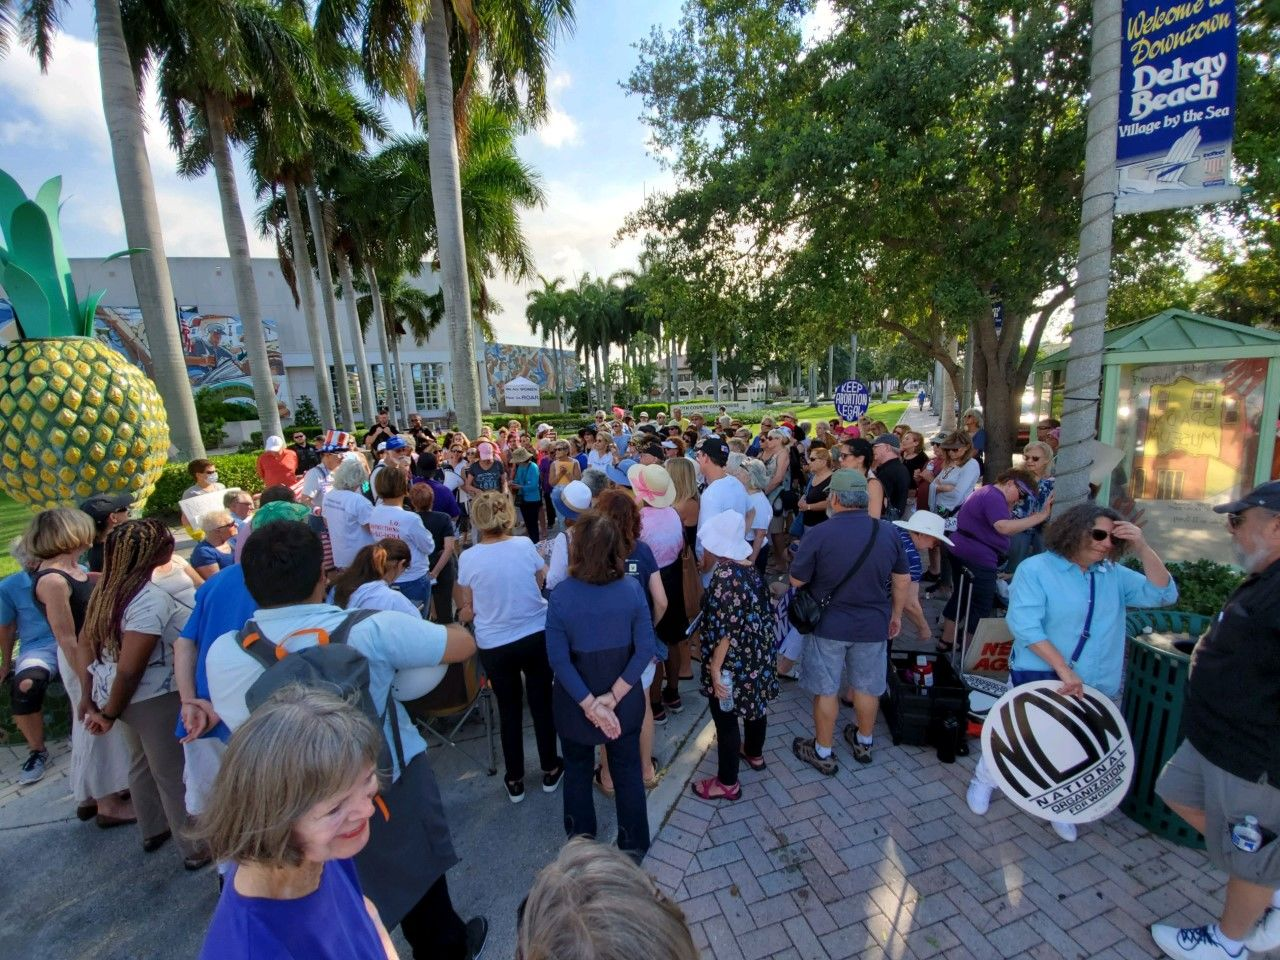 Abortion ban protest held in Delray Beach (WPEC)